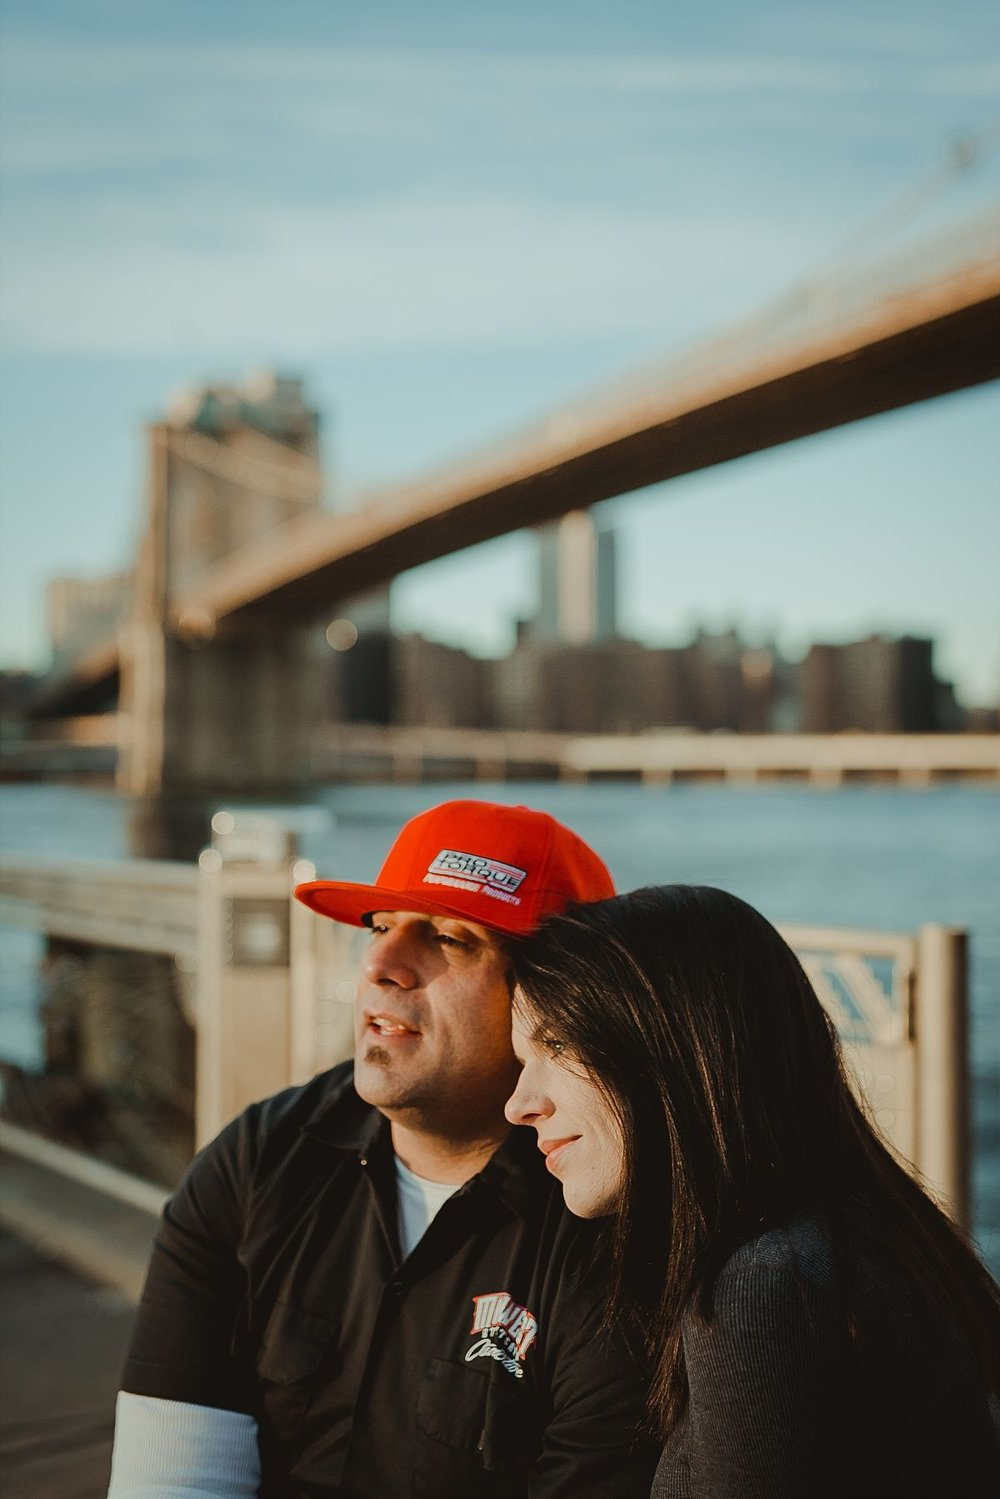 portrait of lovely couple with brooklyn bridge in the background. couple embraces on beach front in dumbo brooklyn looking out at beautiful manhattan skyline and brooklyn bridge. image by nyc family photographer krystil mcdowall